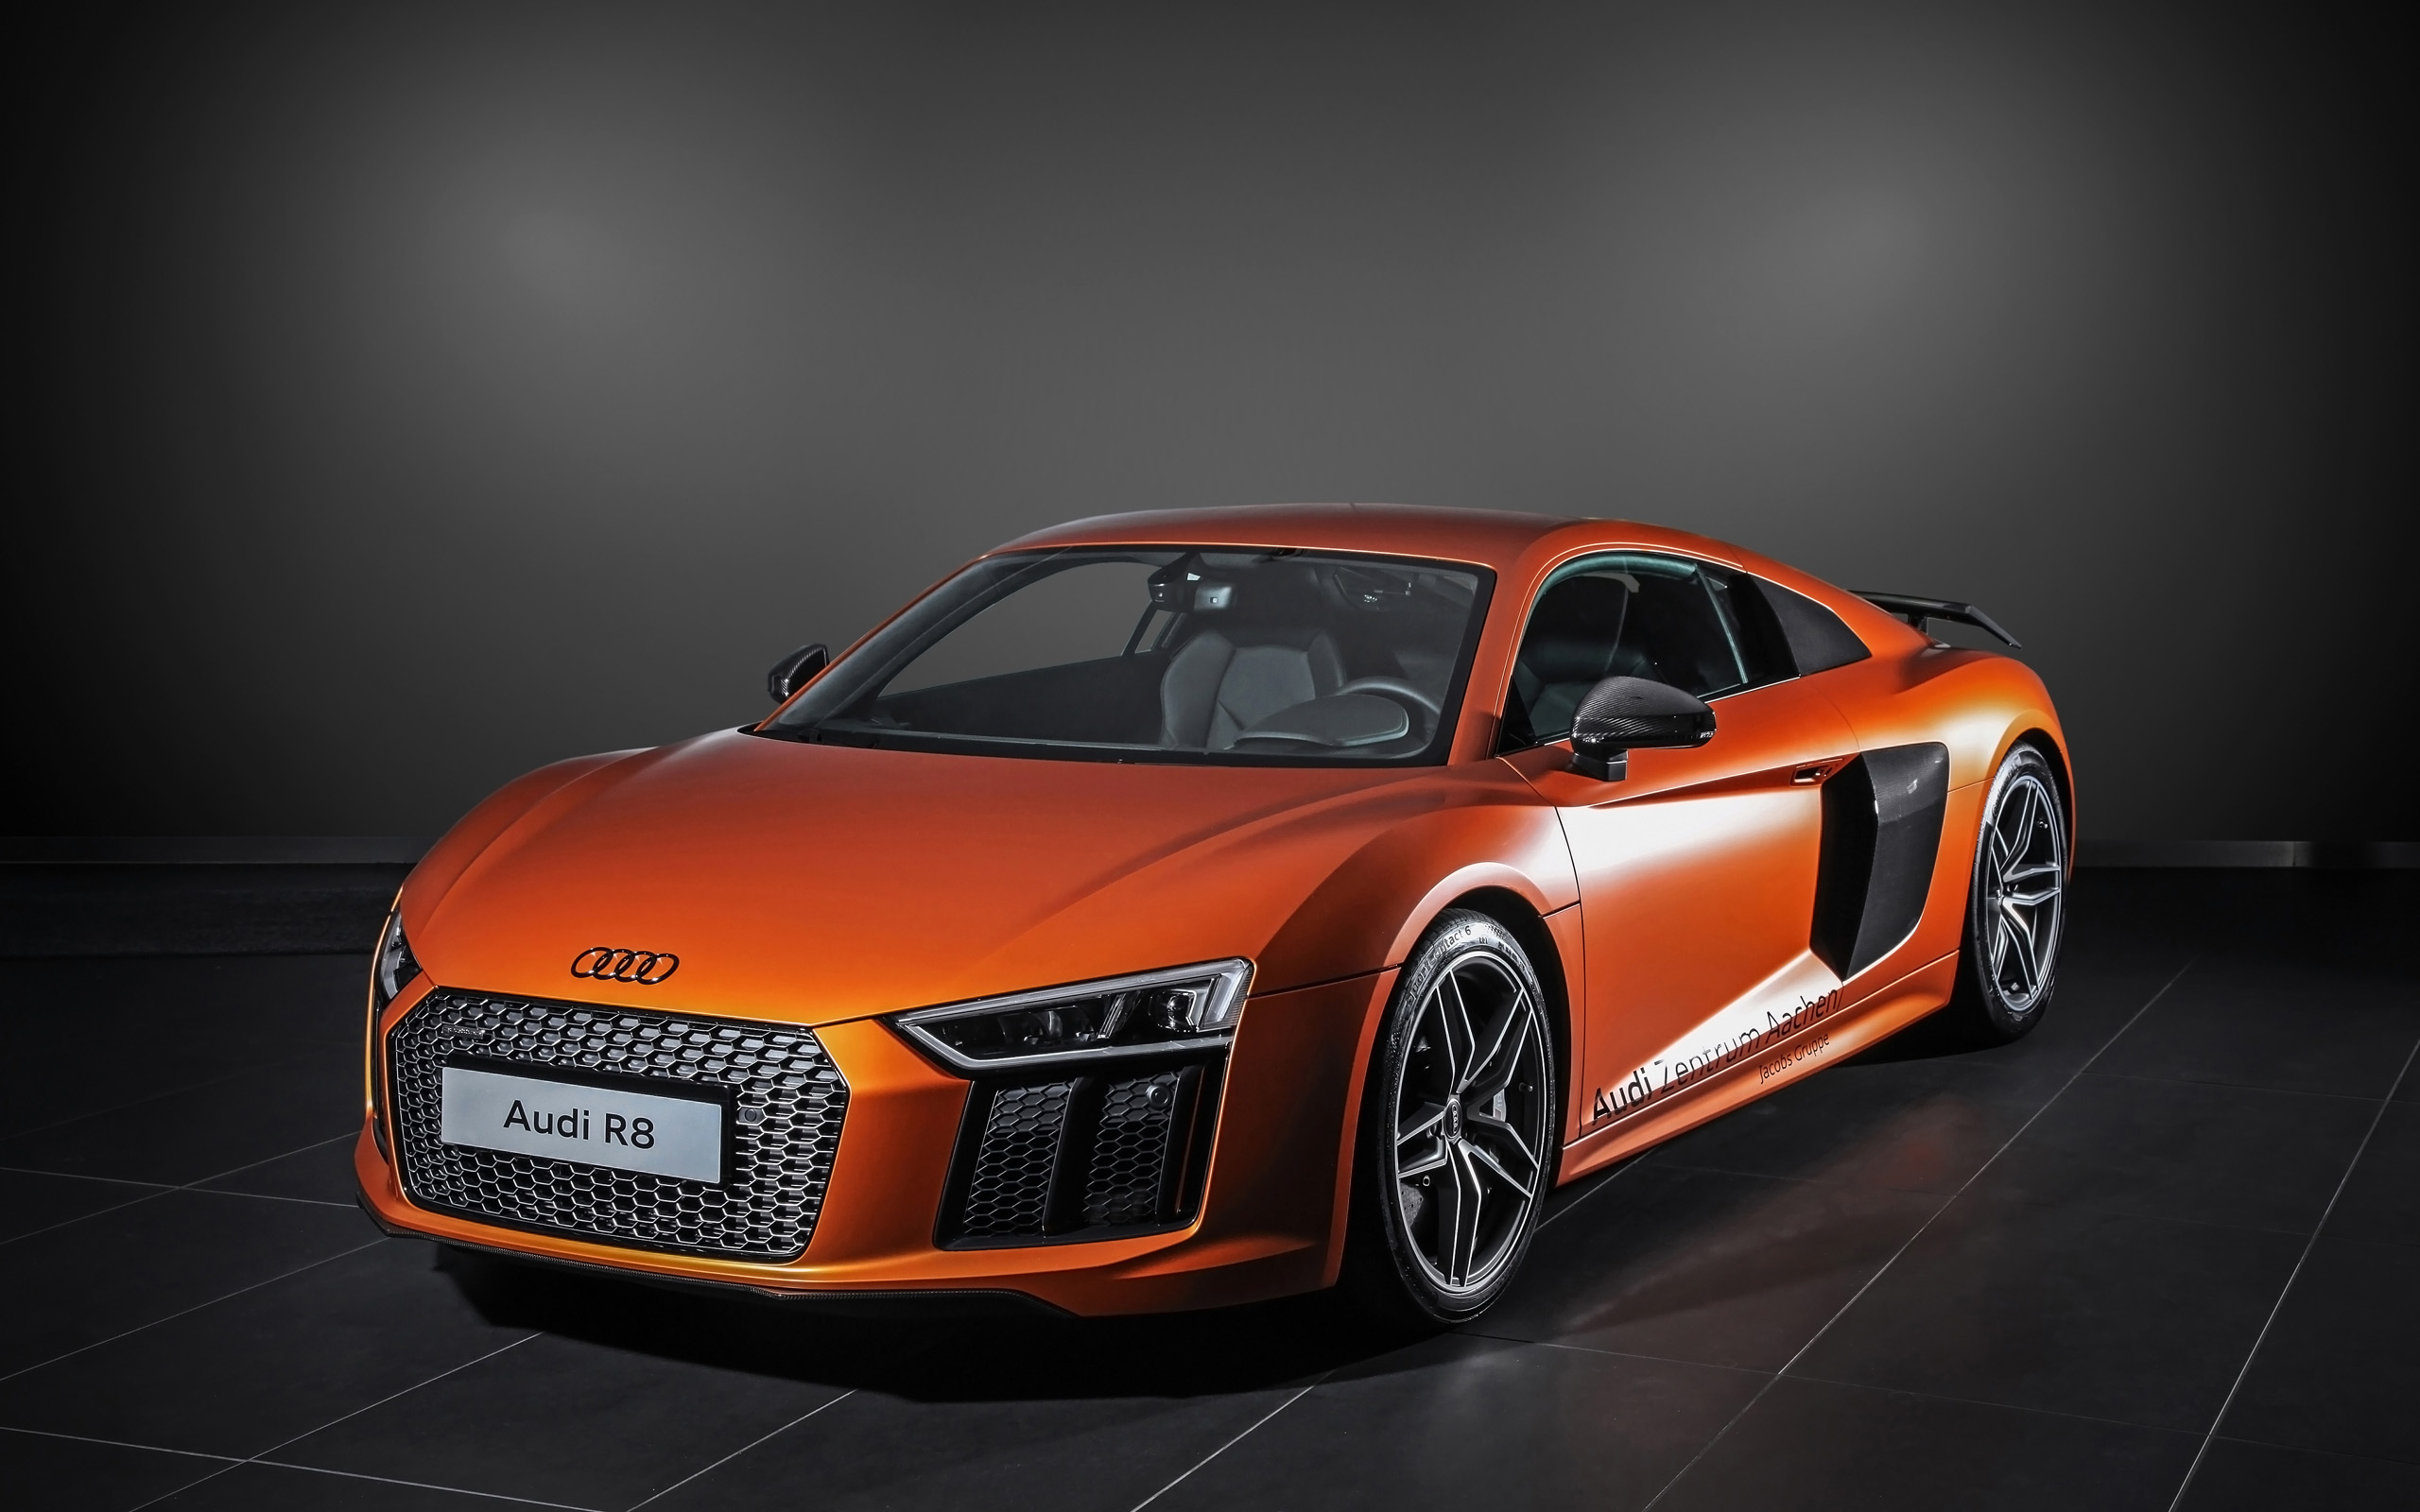 2015 hplusb design audi r8 v10 plus wallpaper hd car. Black Bedroom Furniture Sets. Home Design Ideas